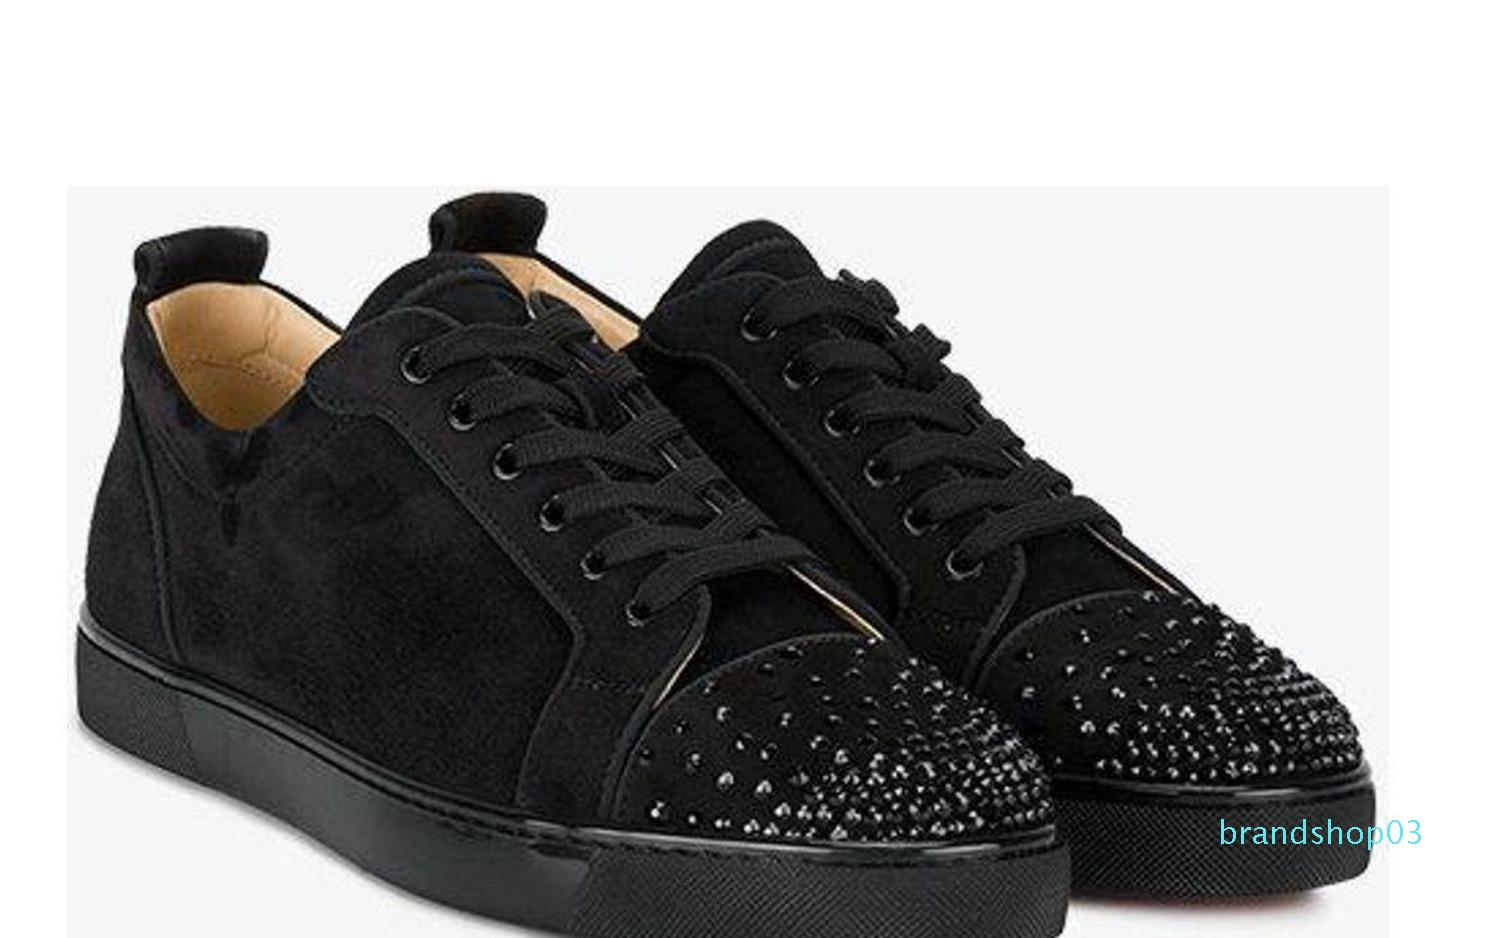 Designer Shoes Studded Spikes Sneakers